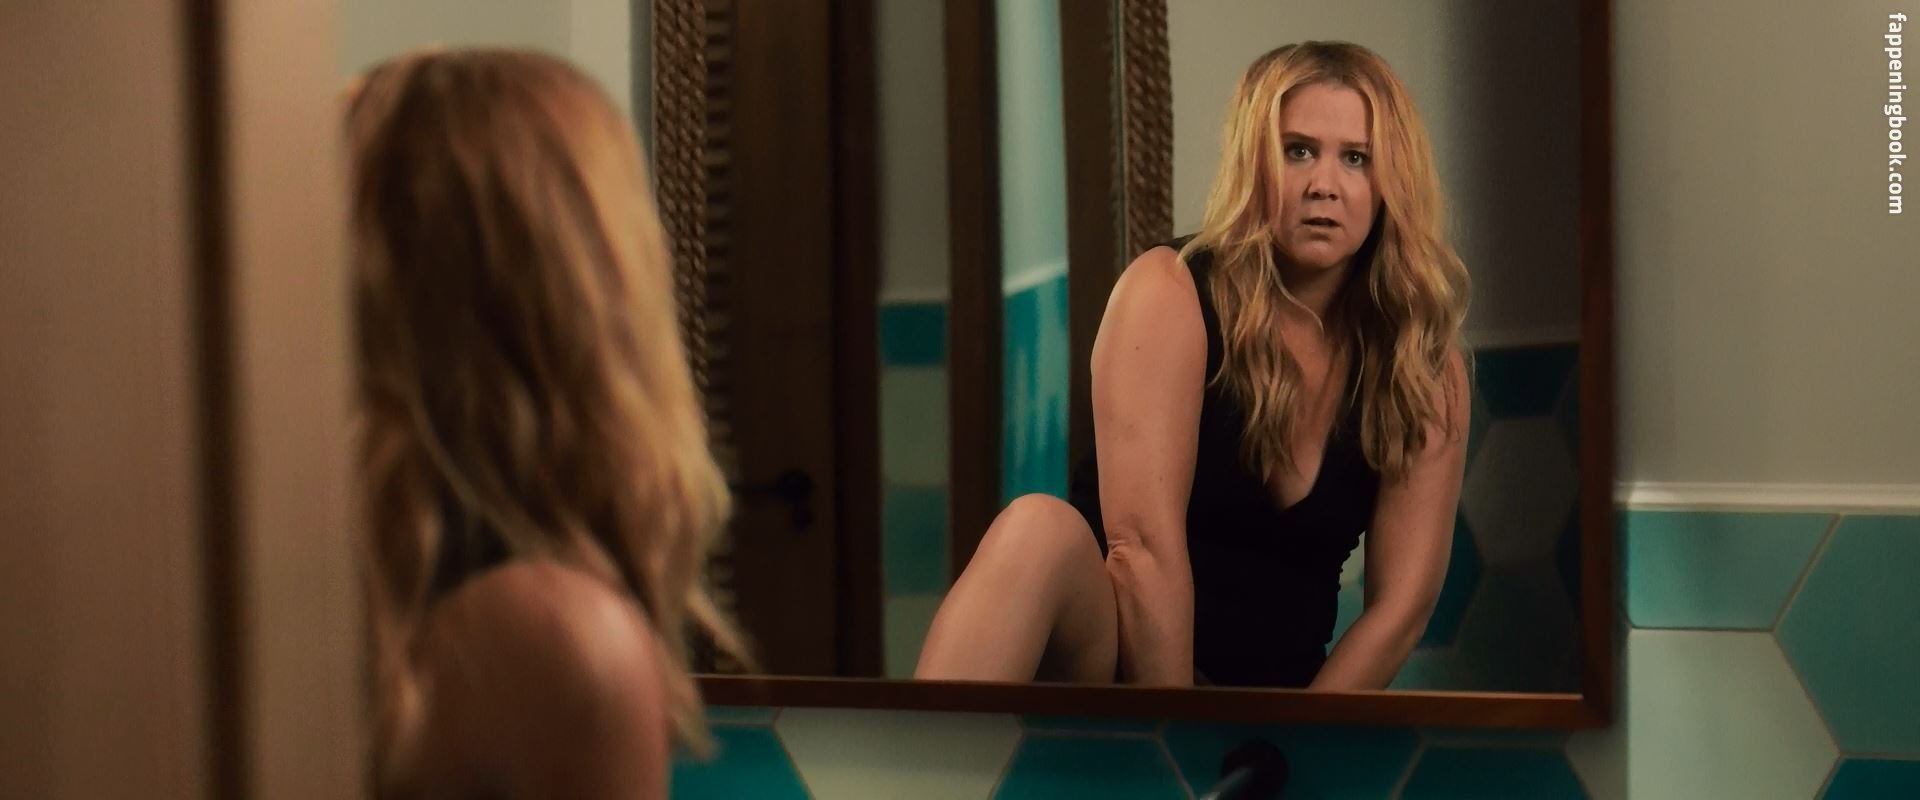 Amy Schumer Nude Scene amy schumer nude, sexy, the fappening, uncensored - photo